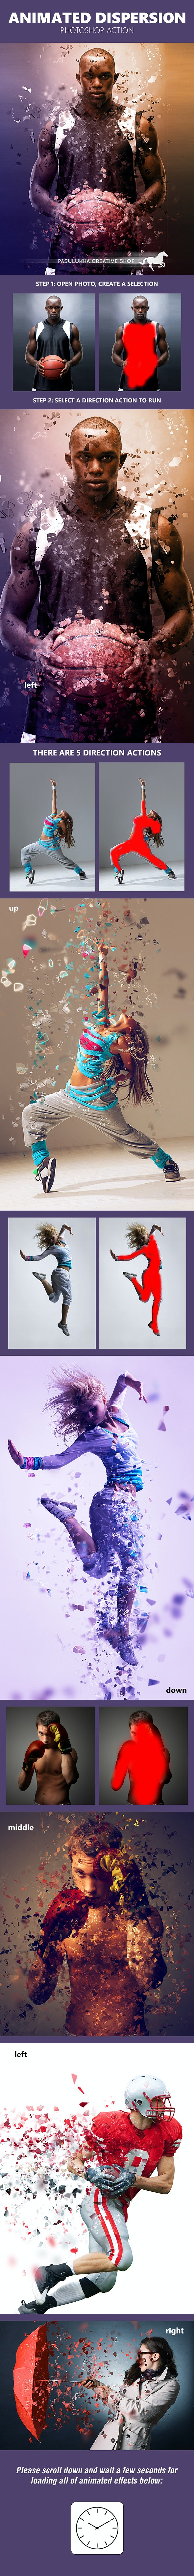 Animated Dispersion - Photo Effects Actions